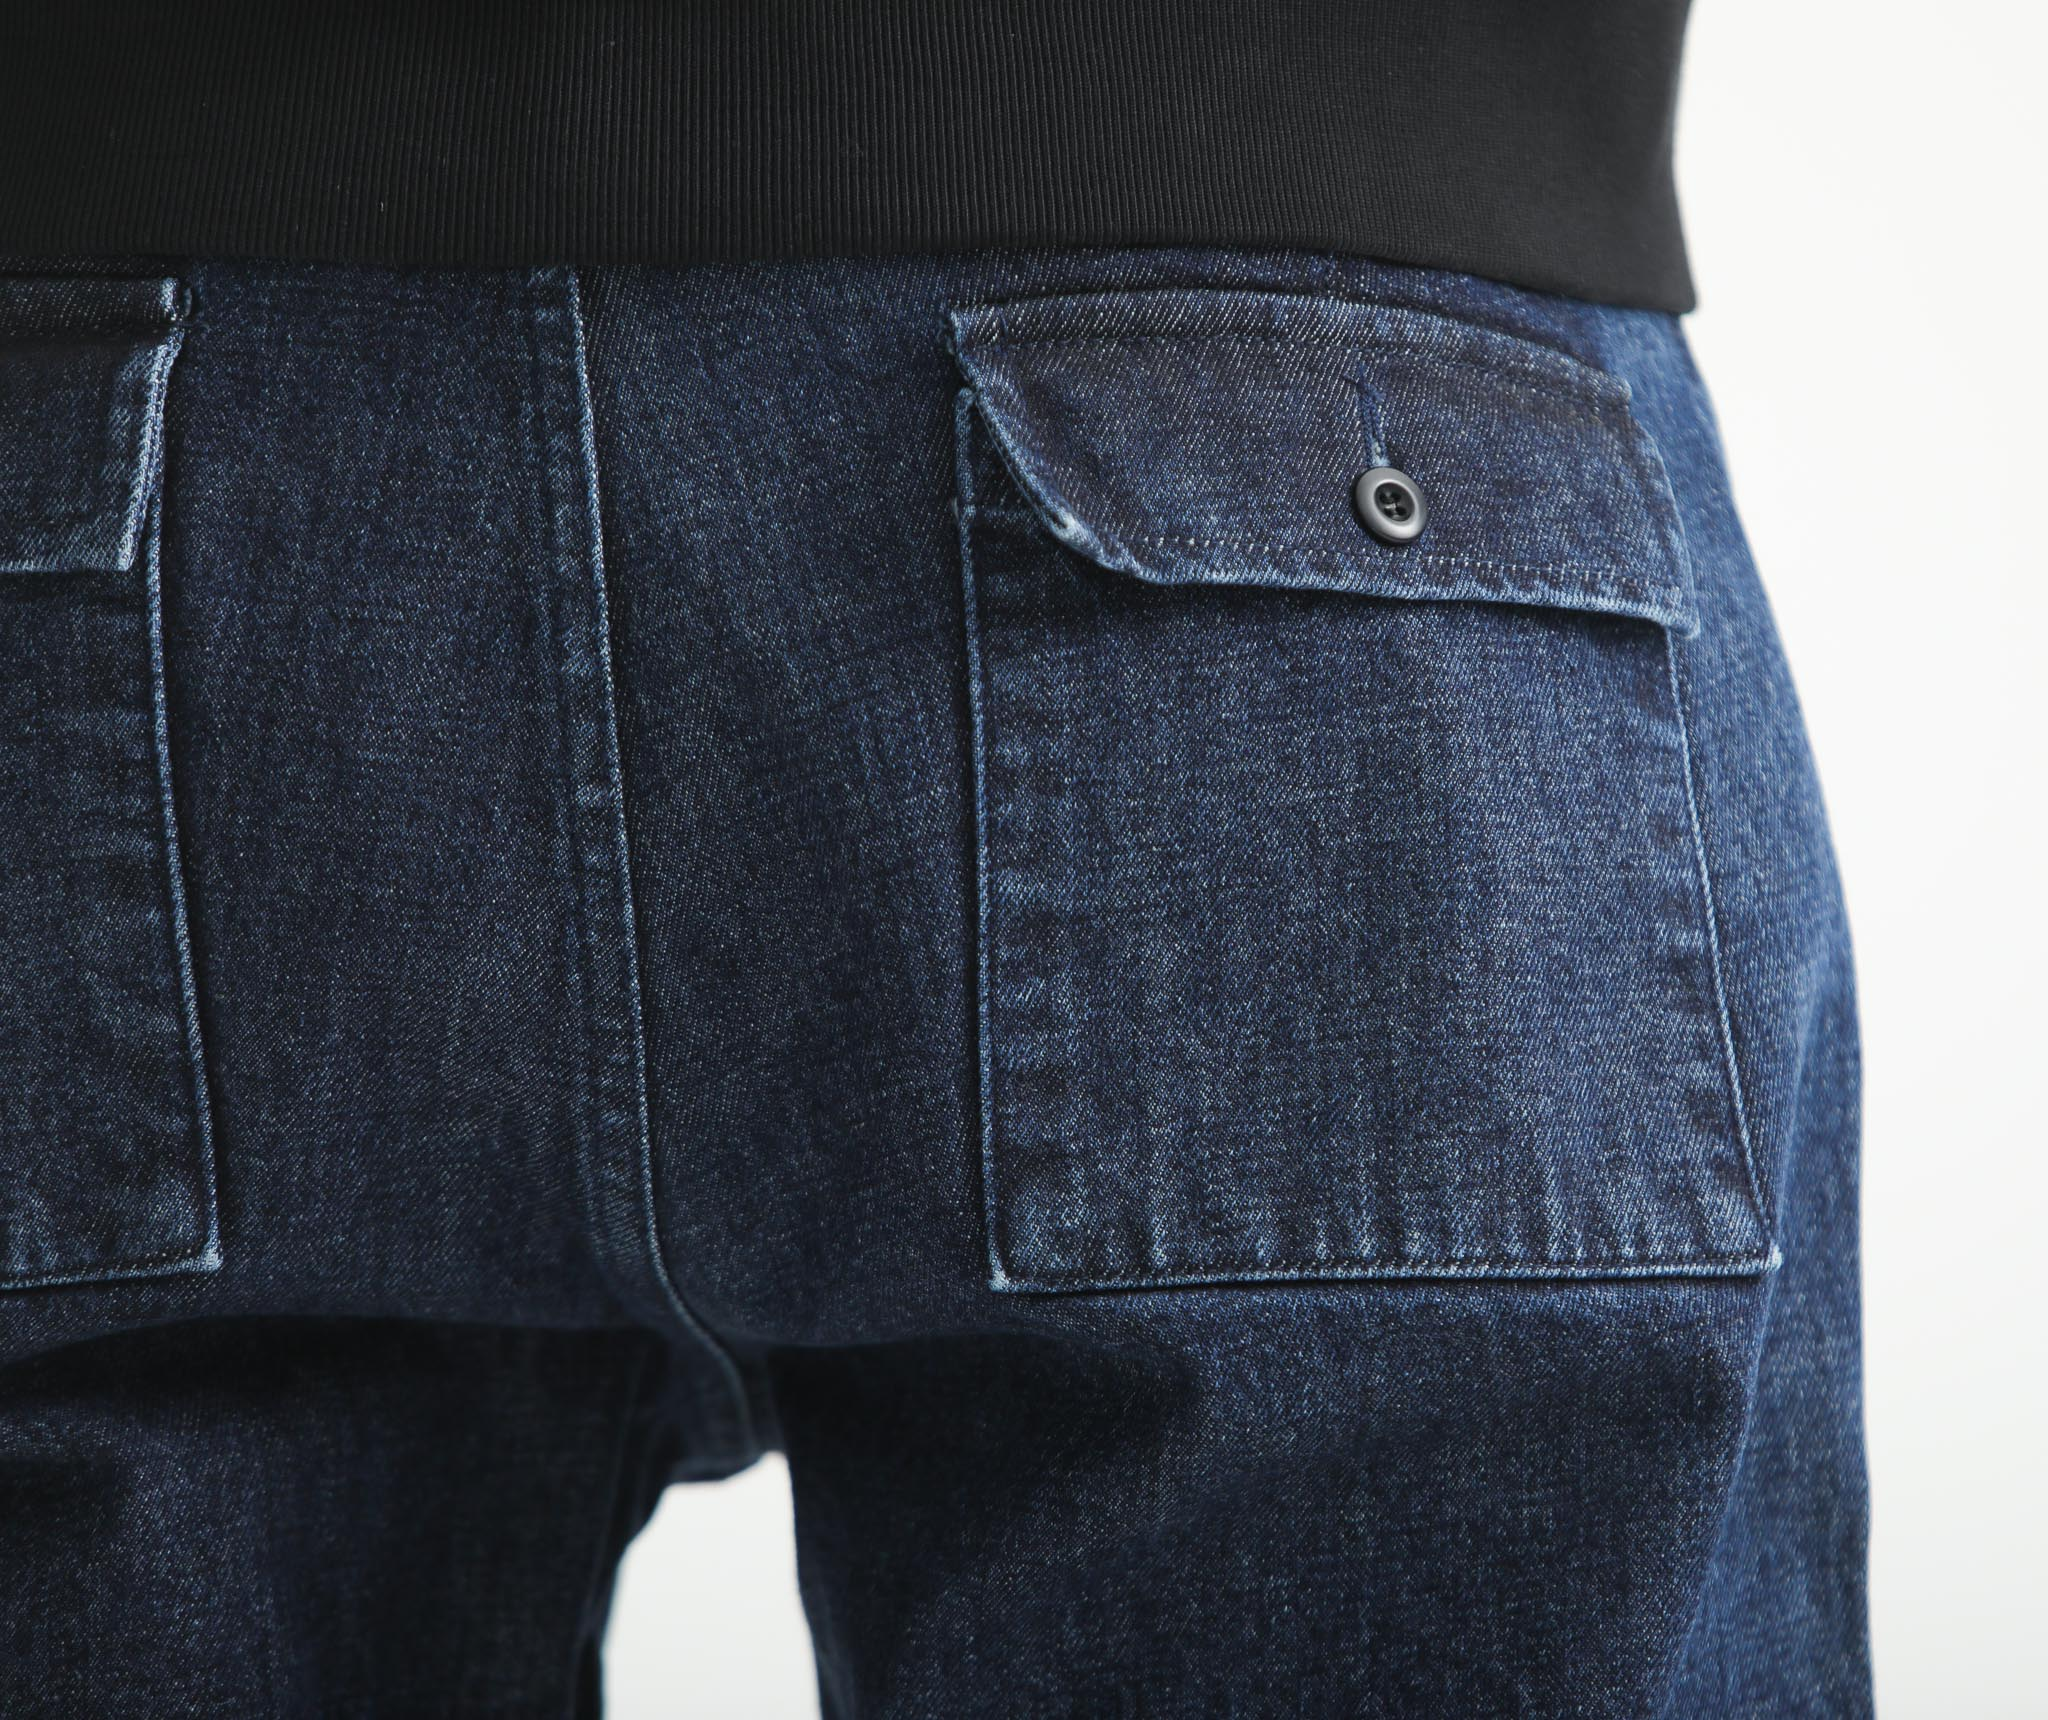 Fatigue Pants Denim Indigo